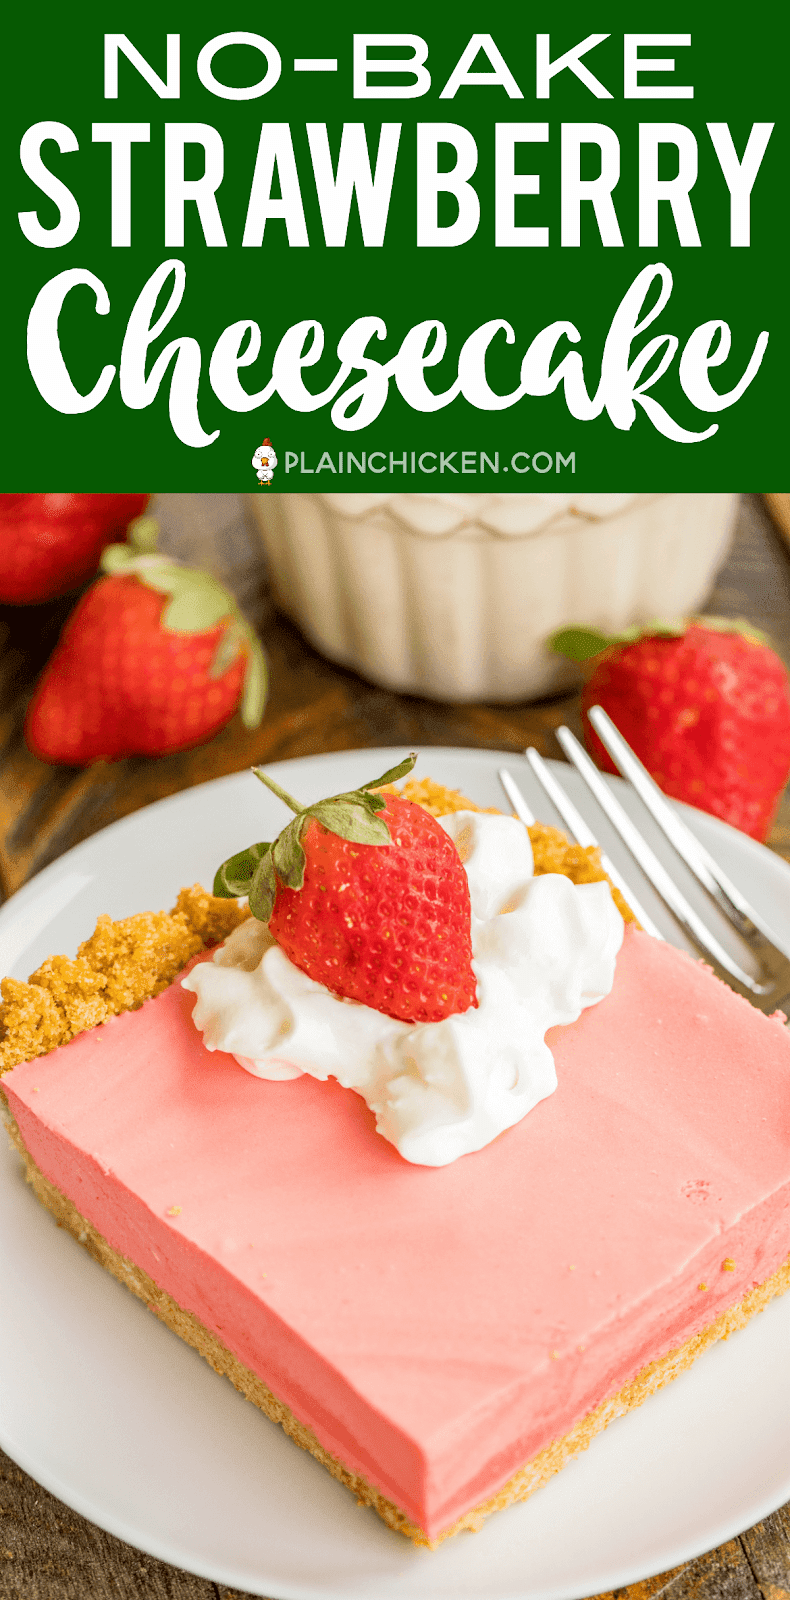 Unbaked Strawberry Cheesecake Recipe - Graham Cracker Crust, Fluffy Light Baked Cheesecake - SO good. Seriously, THE BEST unbaked cheesecake! Great with whipped cream and fresh strawberries. Strawberry jelly, boiling water, strawberry juice, cream cheese, sugar, vanilla, evaporated milk, graham cracker crumbs, butter. Seriously delicious! Great dessert recipe for a crowd! #cheesecake #nobakedessert #dessert